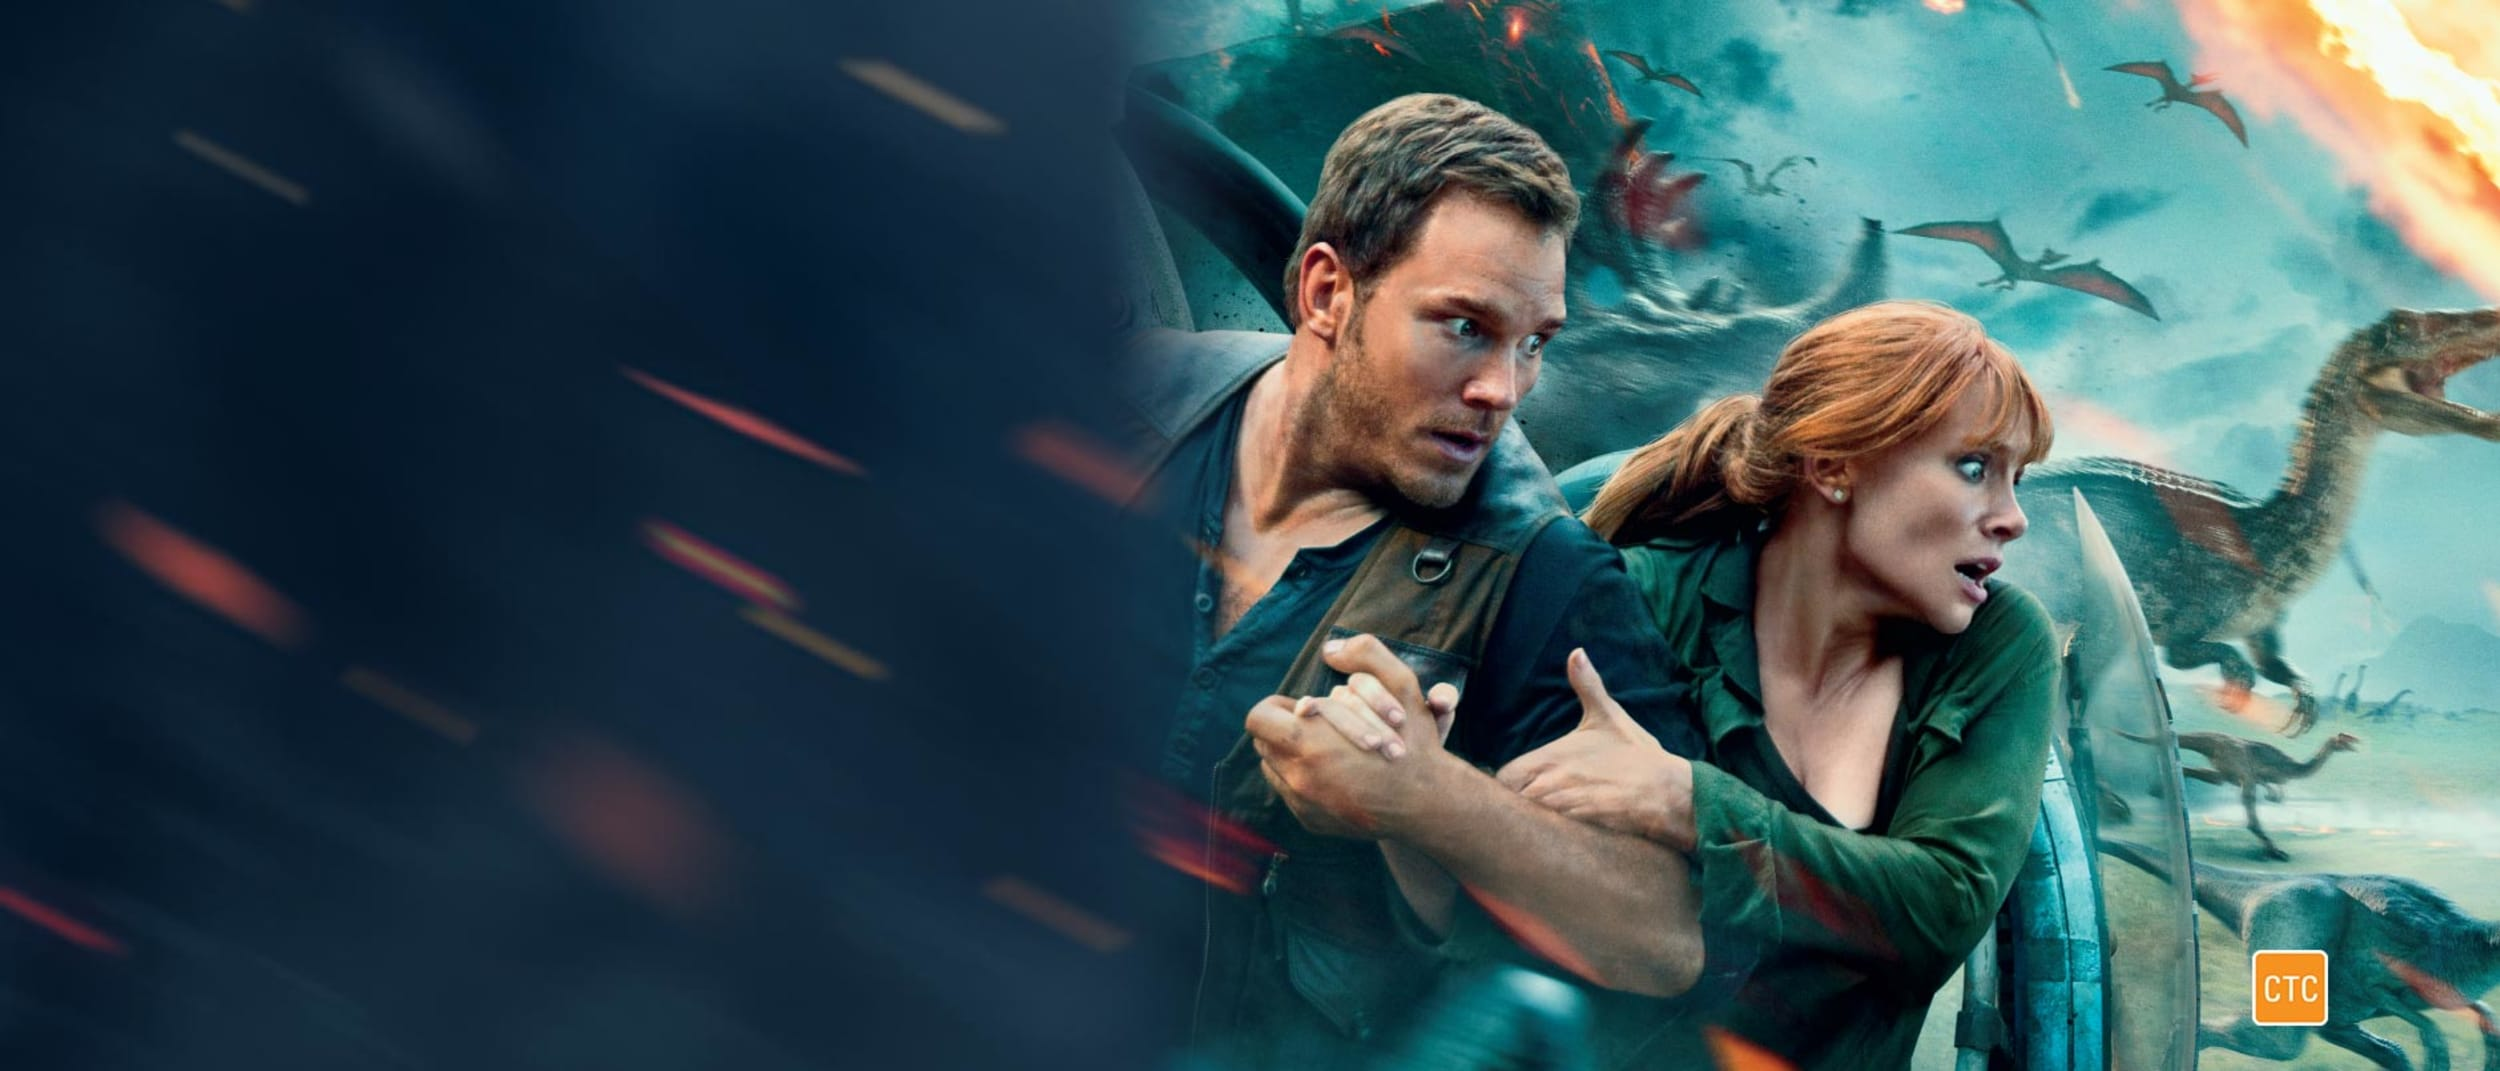 HOYTS: Advance Screening of Jurassic World: Fallen Kingdom